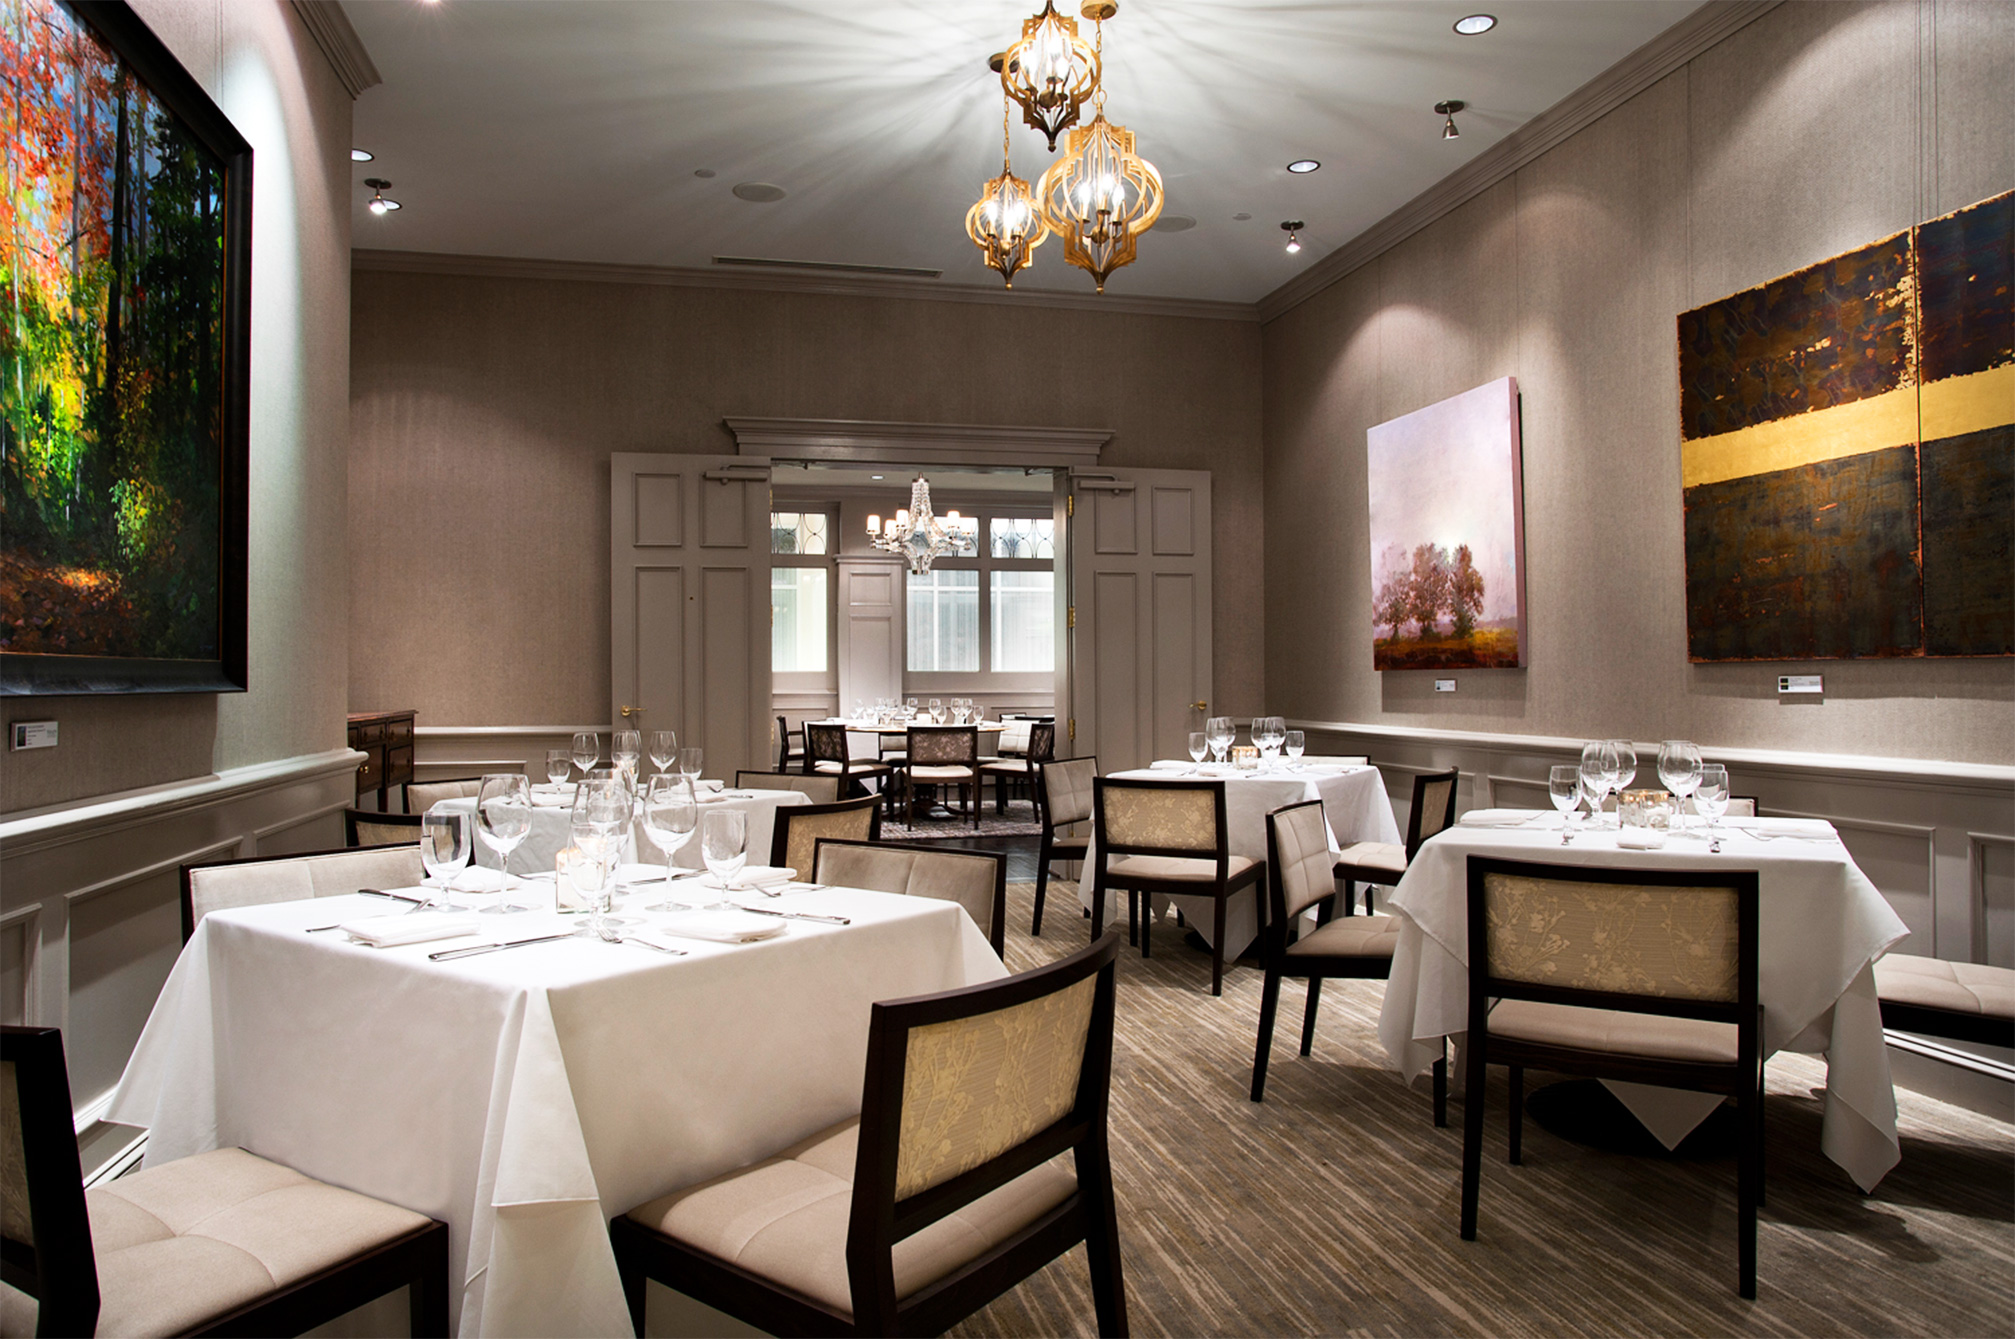 private dining  u2013 the gallery restaurant  charlotte  nc